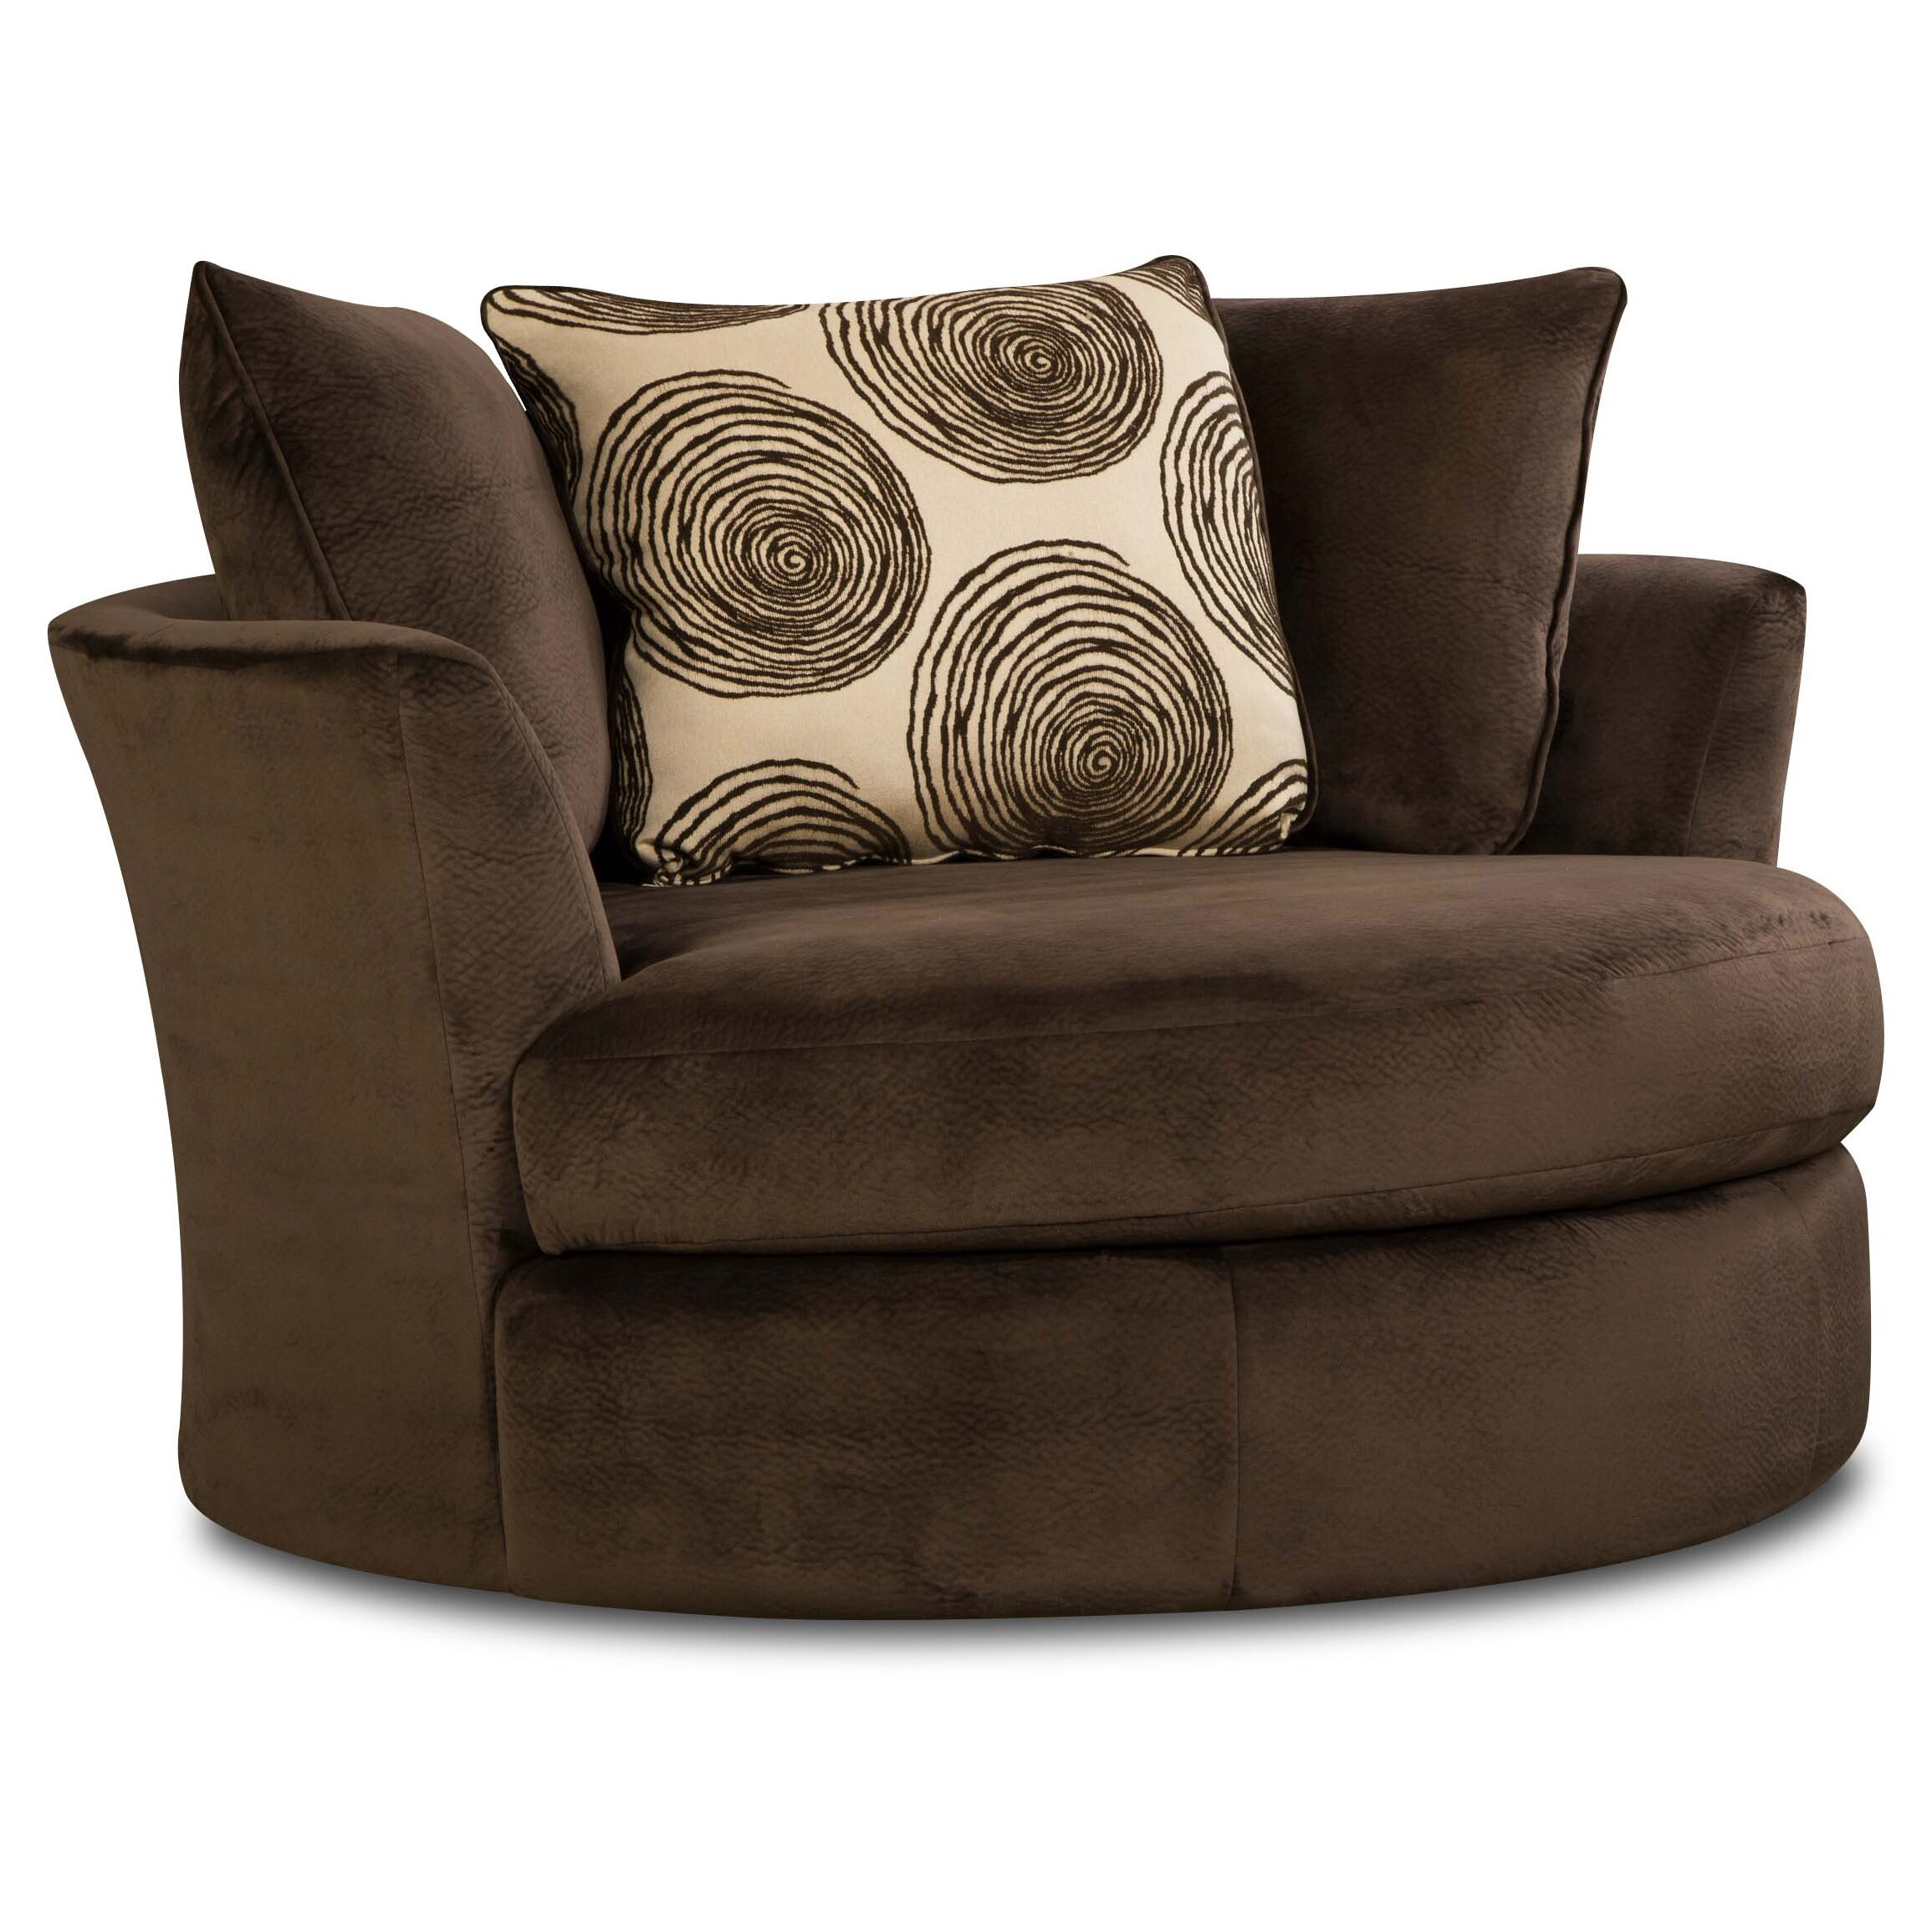 Small Swivel Chairs For Living Room Swivel Living Room Chairs Winda 7 Furniture